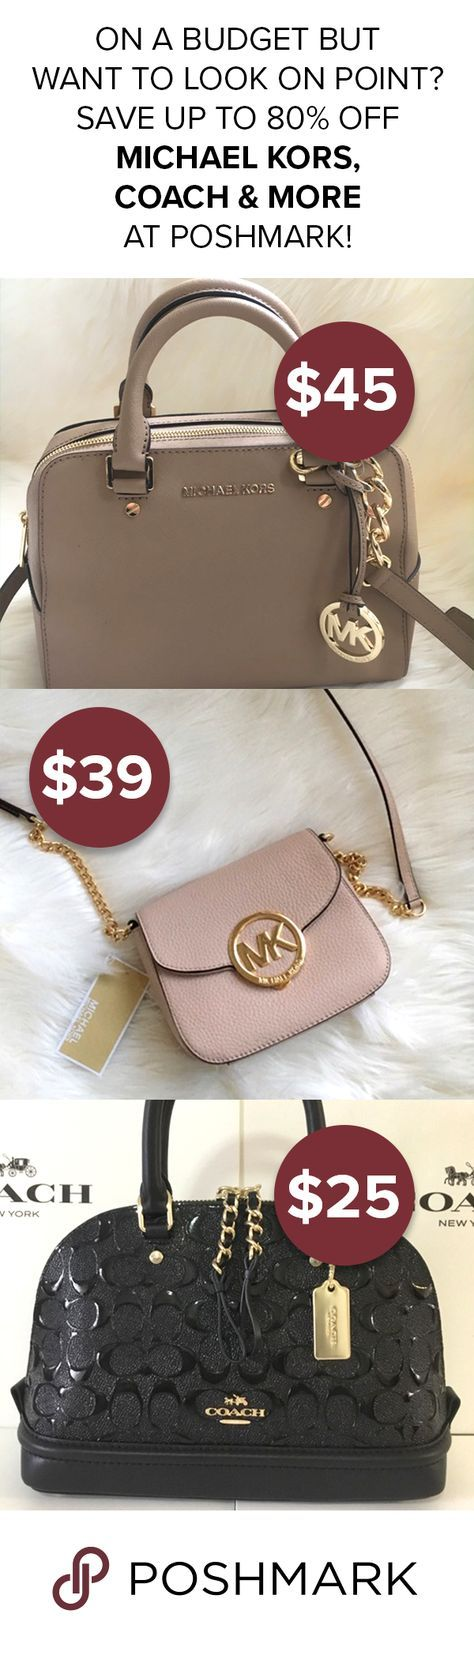 Shop, Sell, Style. Be on trend while still staying on budget! Download Poshmark and FIND MICHAEL KORS & COACH DEALS up to 80% off!